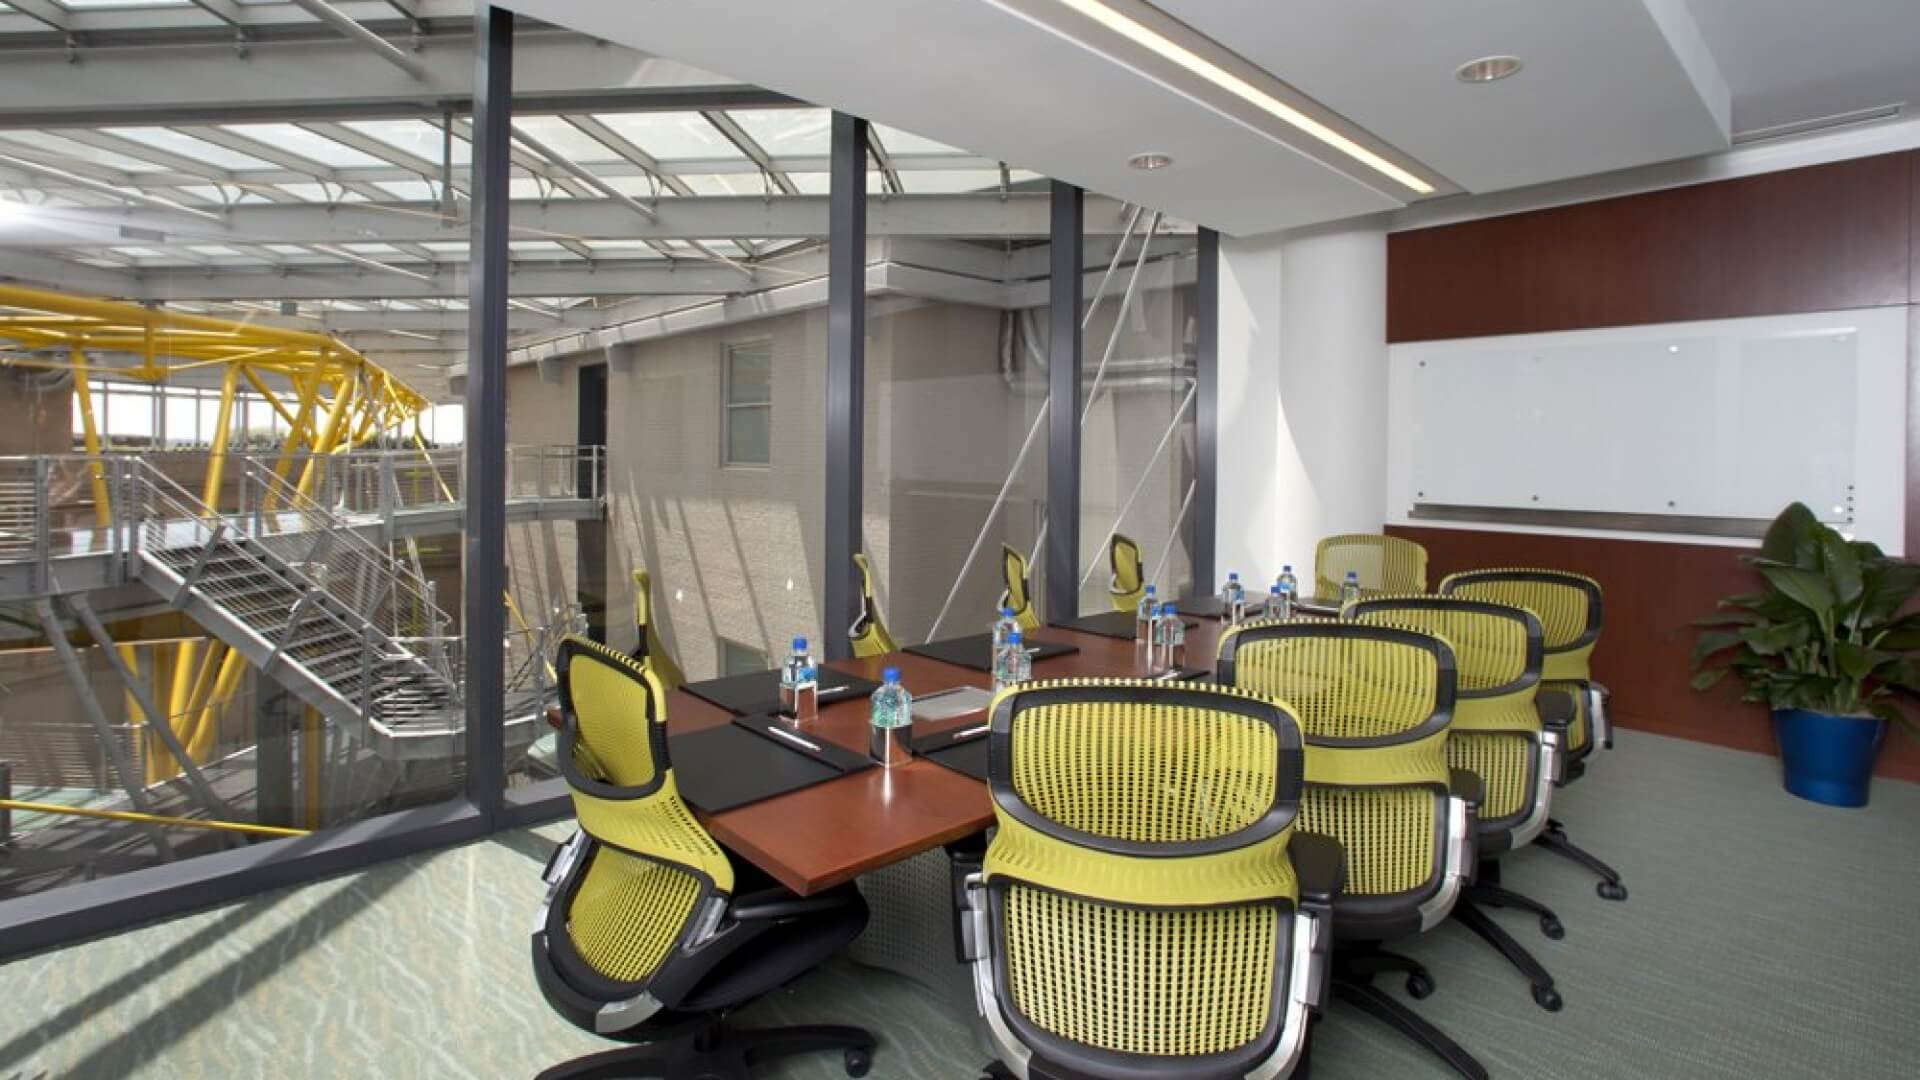 carr workplaces 1325 g street coworking and shared office space washington. Black Bedroom Furniture Sets. Home Design Ideas